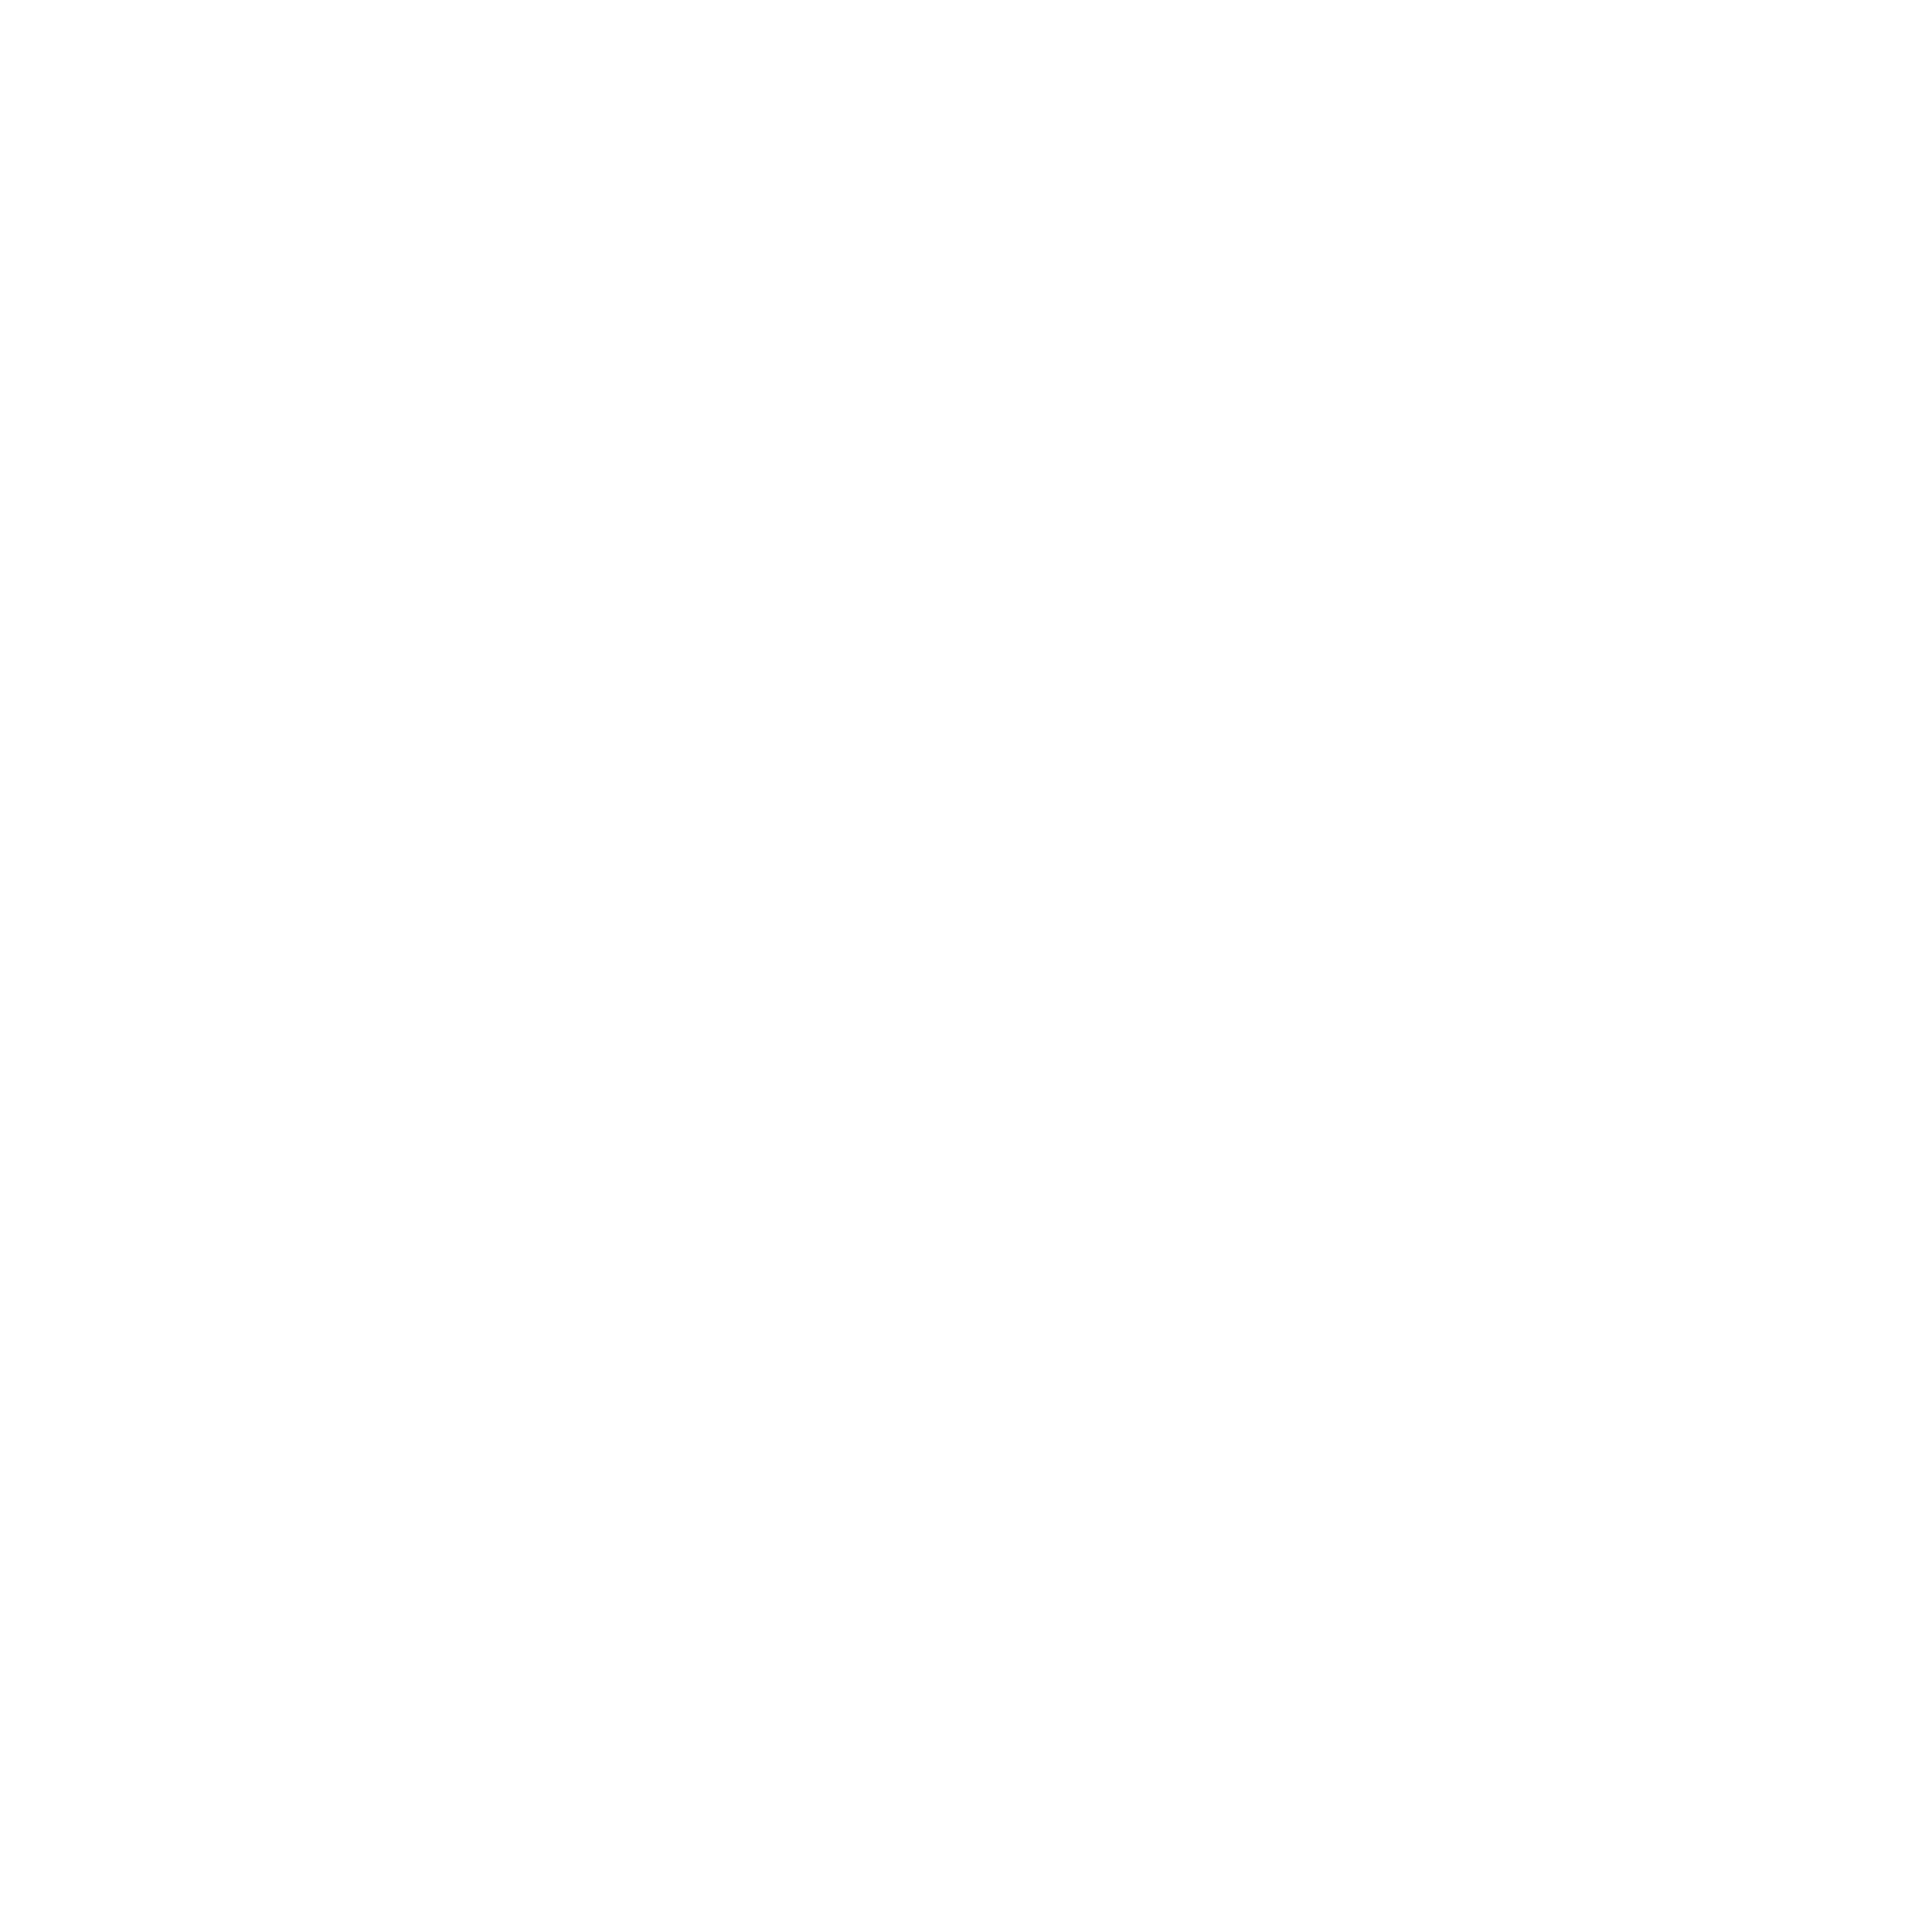 Join as a subscriber